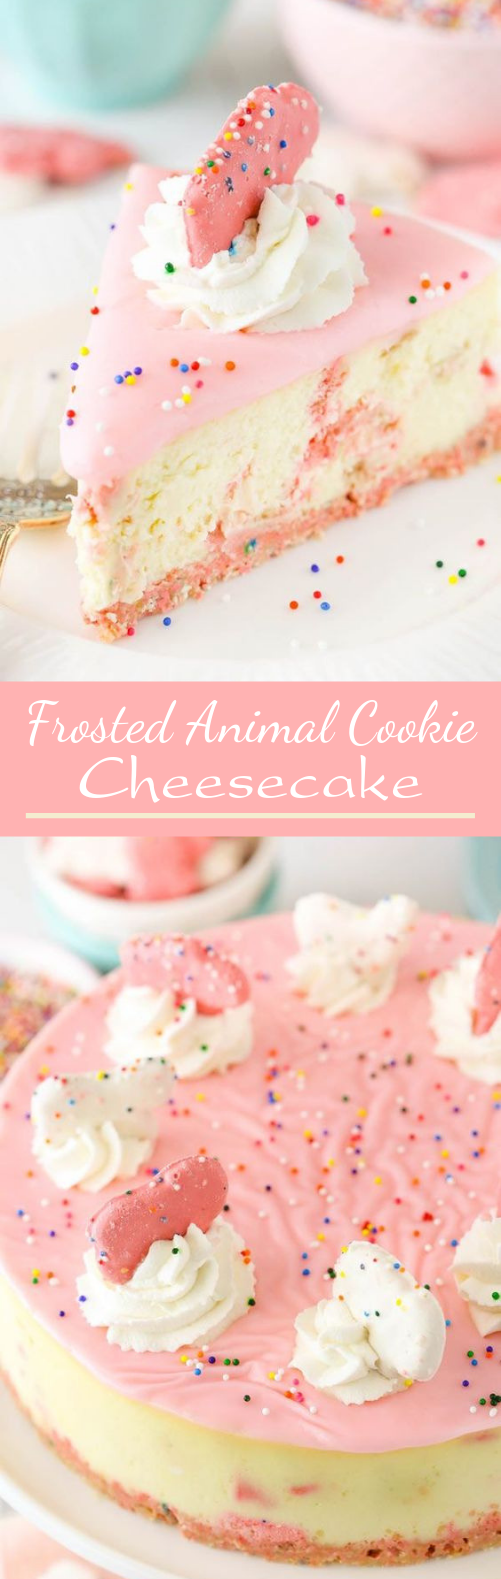 Frosted Animal Cookie Cheesecake #desserts #cake